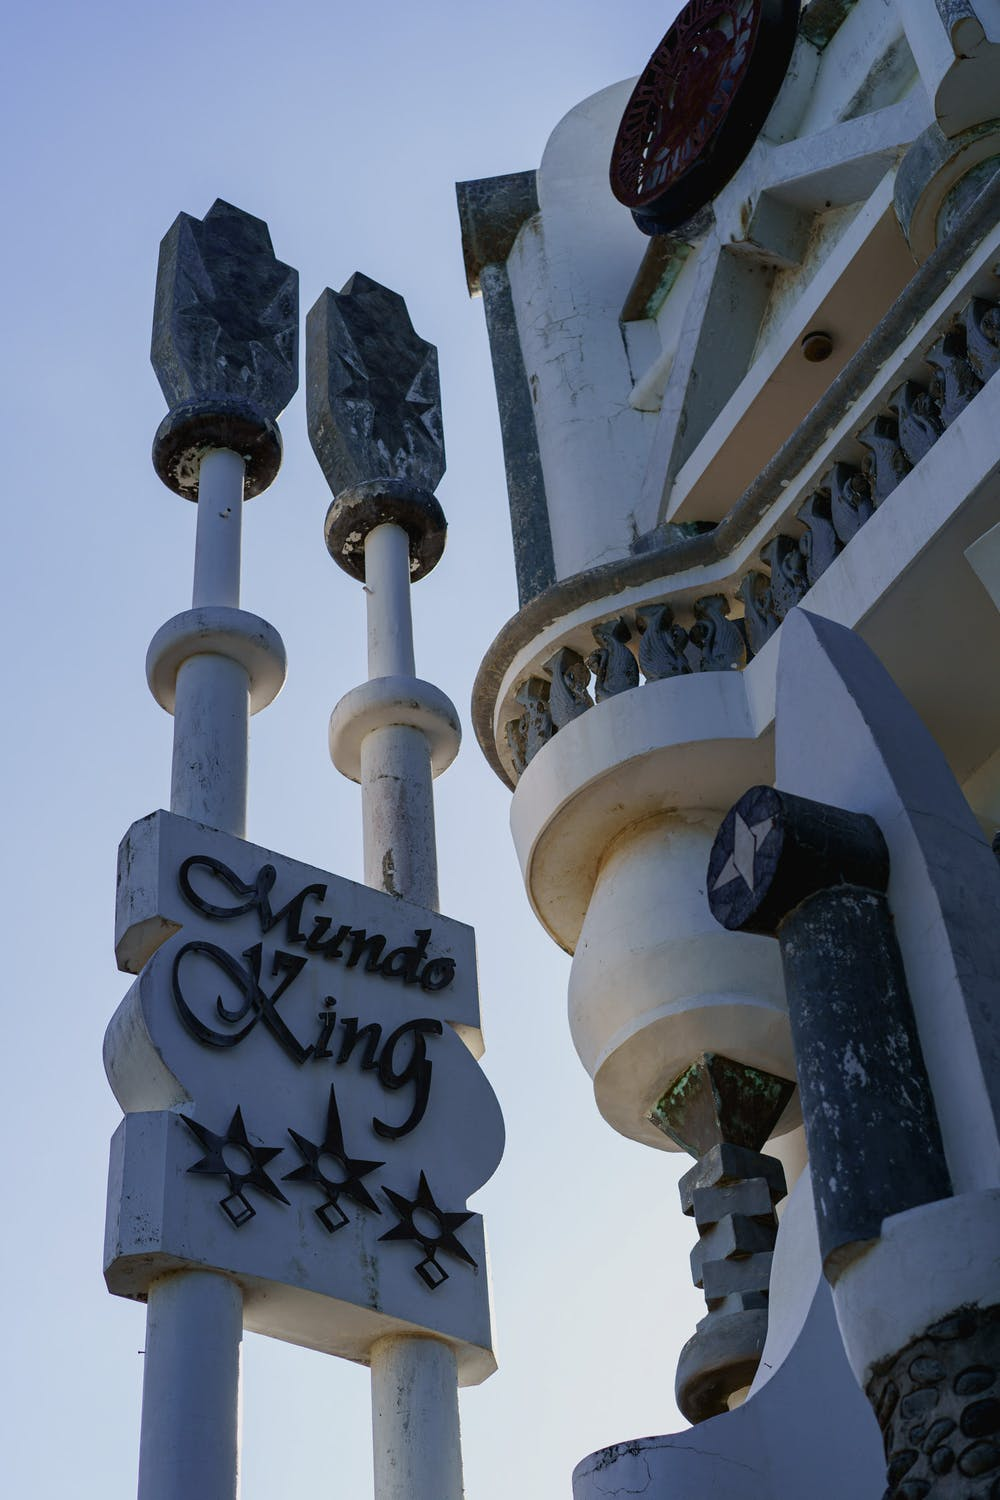 Mundo King sign on a white concrete pole against a blue sky